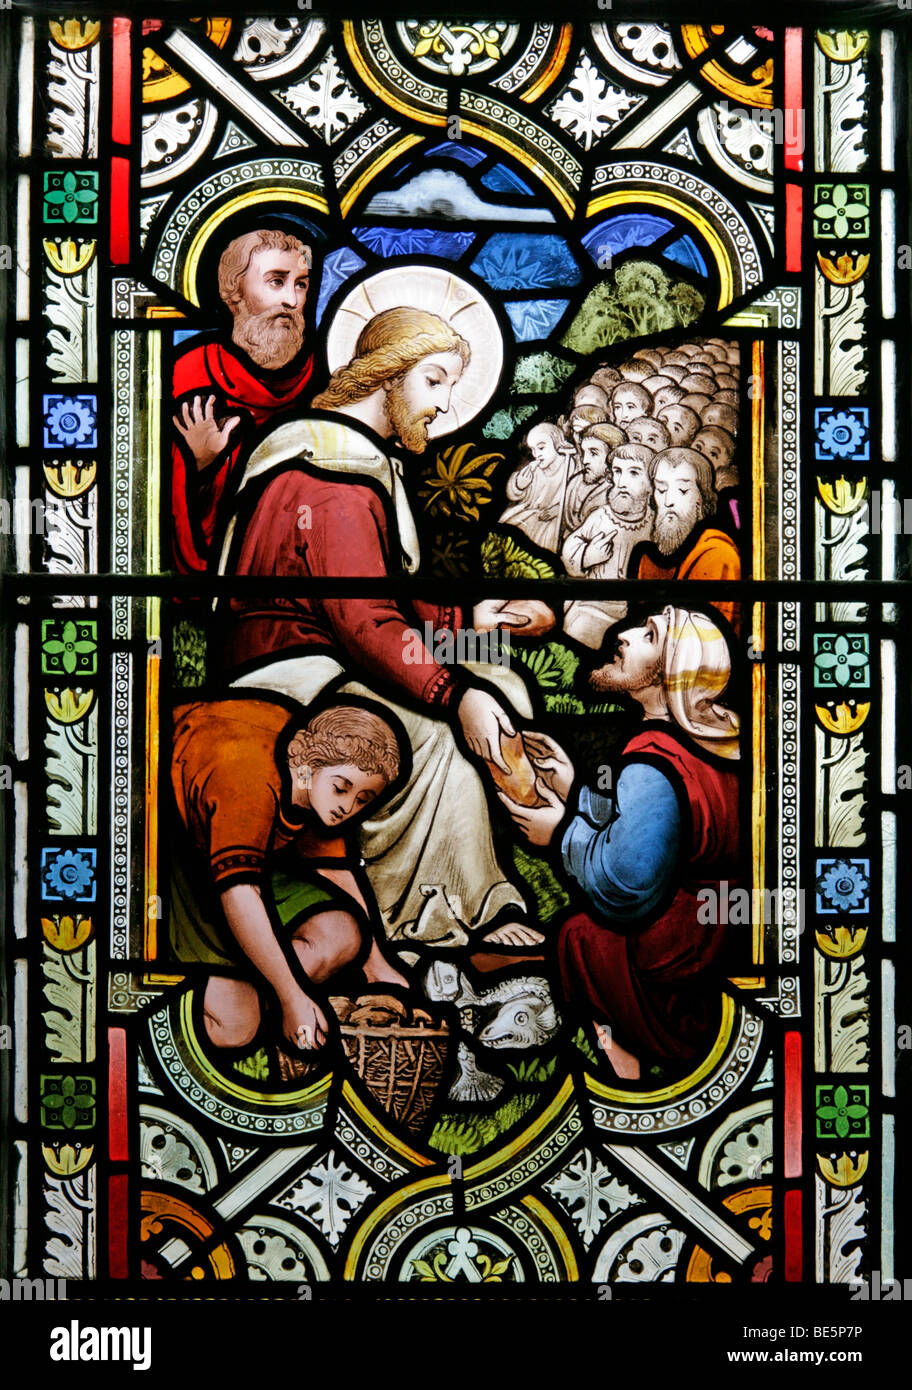 Stained Glass Window Depicting The Feeding of the Five Thousand, St John the Baptist Church, South Carlton, Lincolnshire Stock Photo